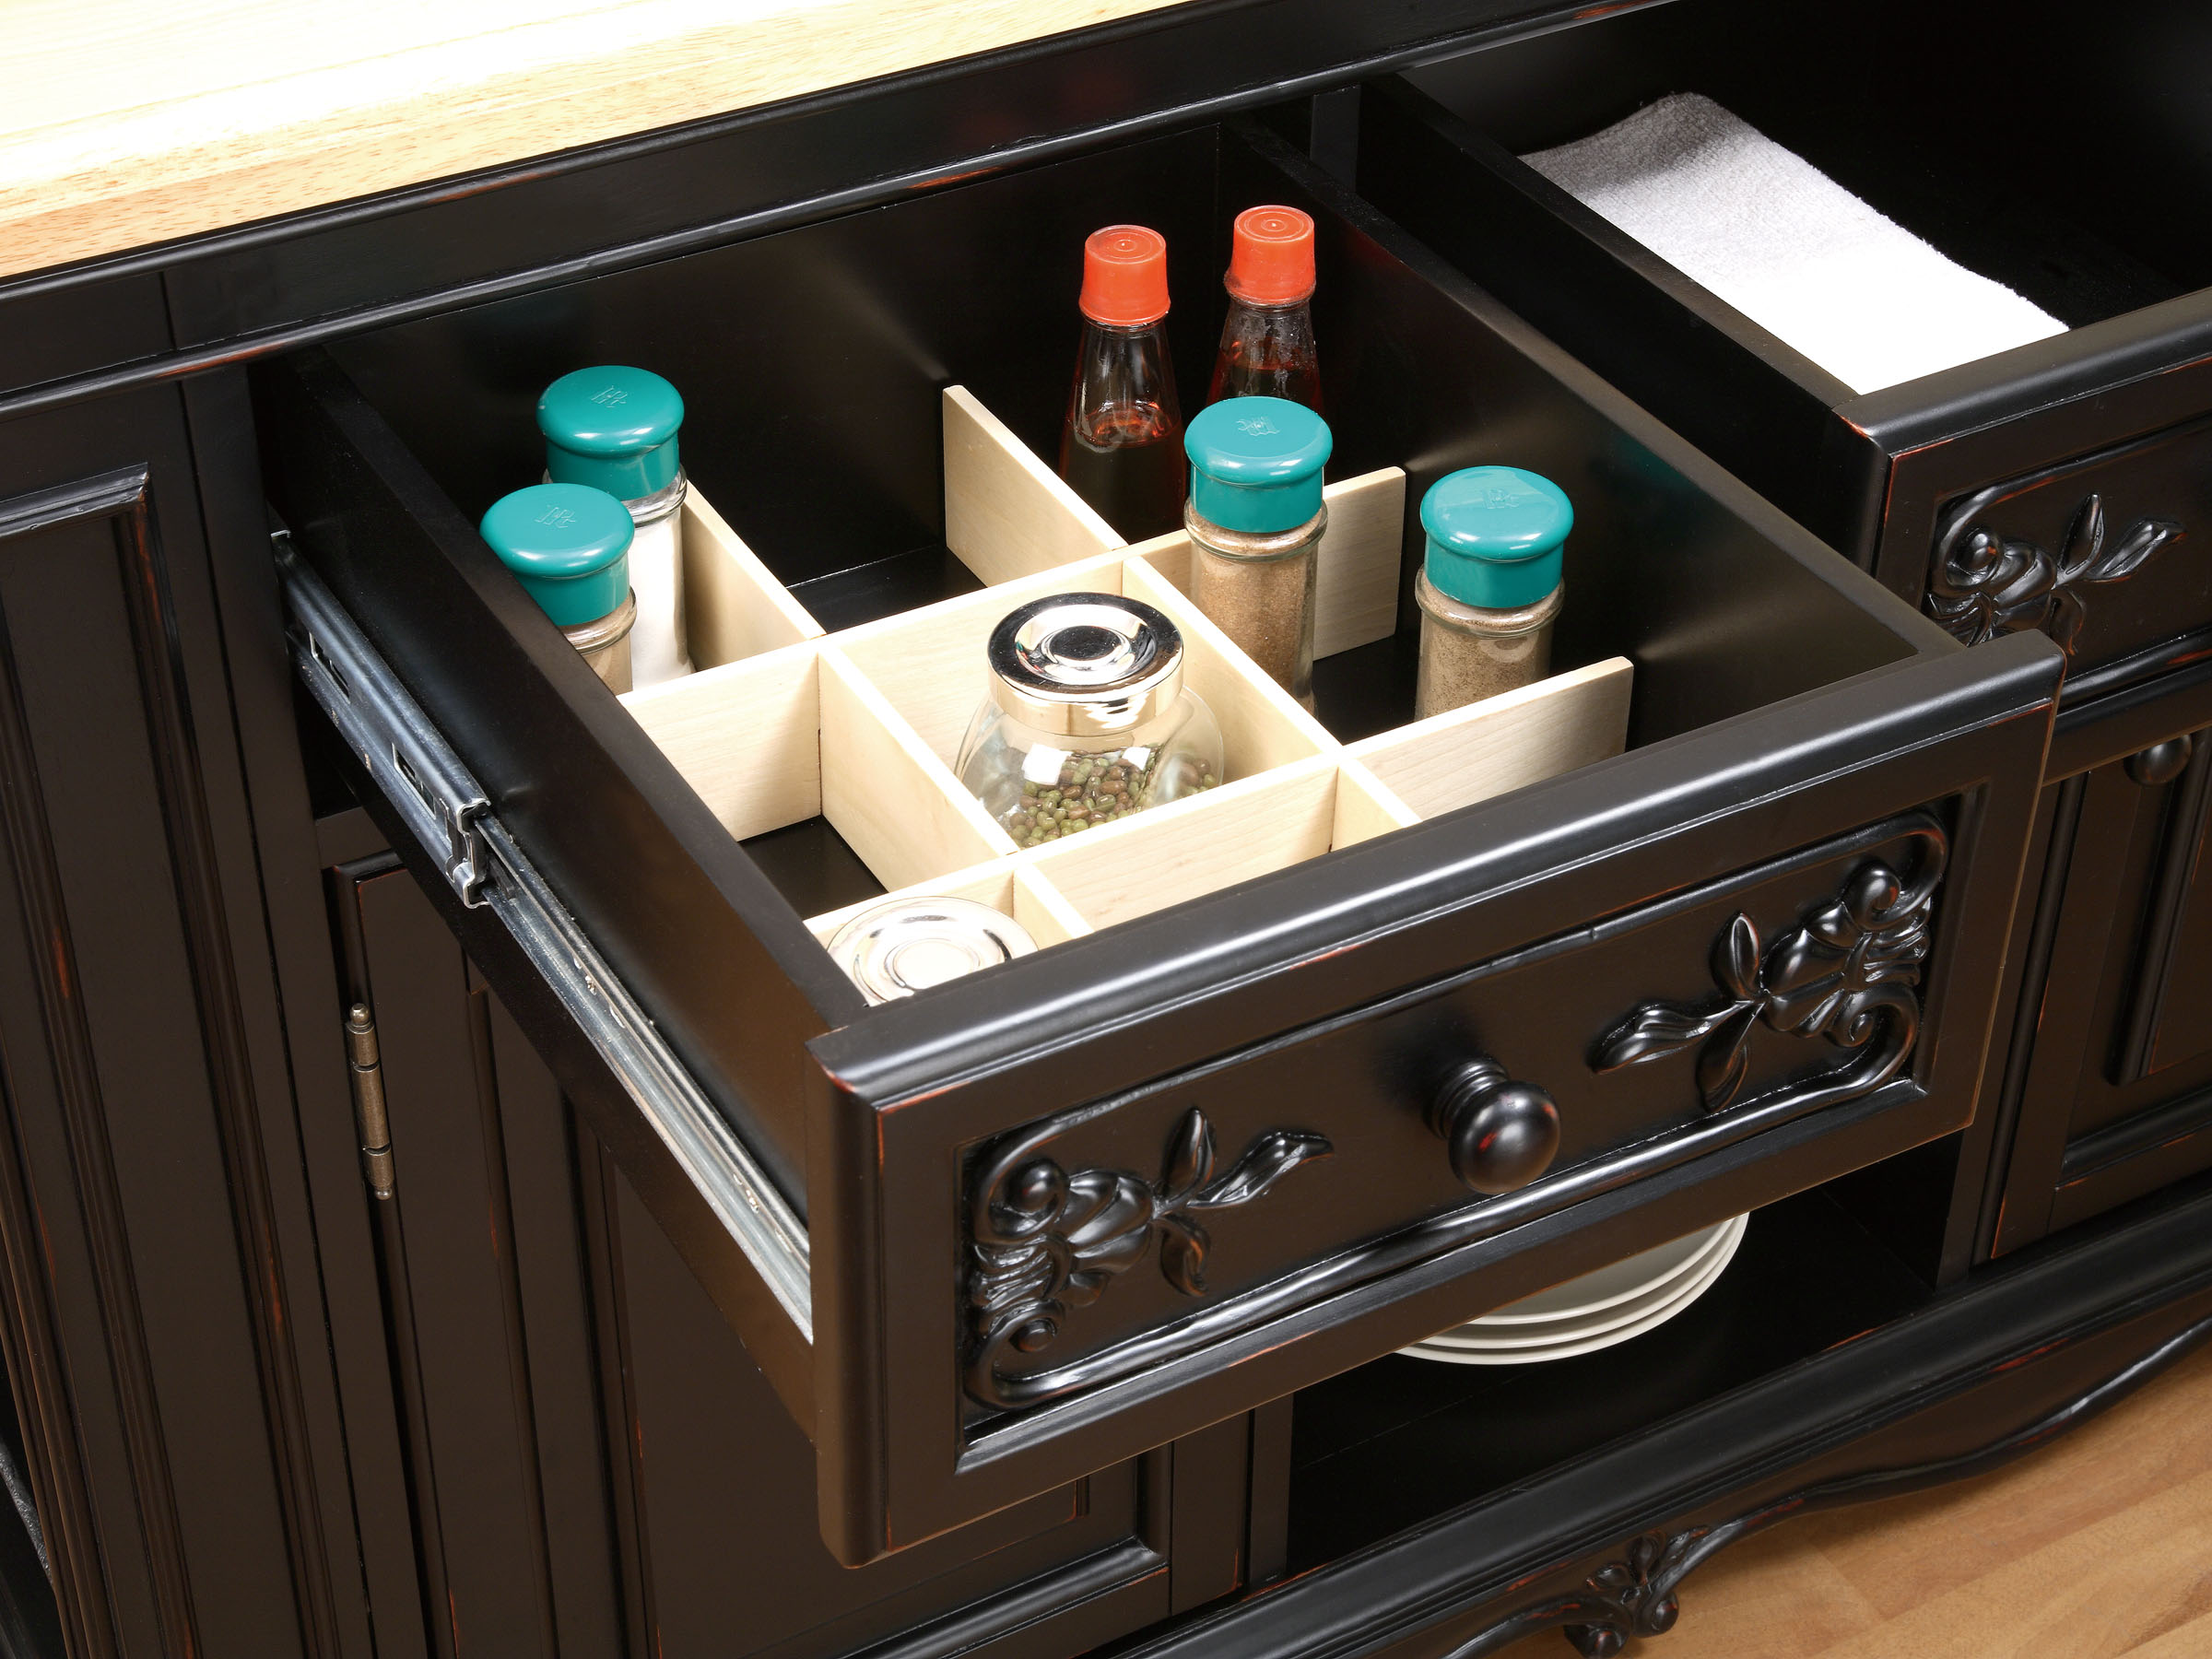 Powell Pennfield Kitchen Island, Black and Natural - Walmart.com